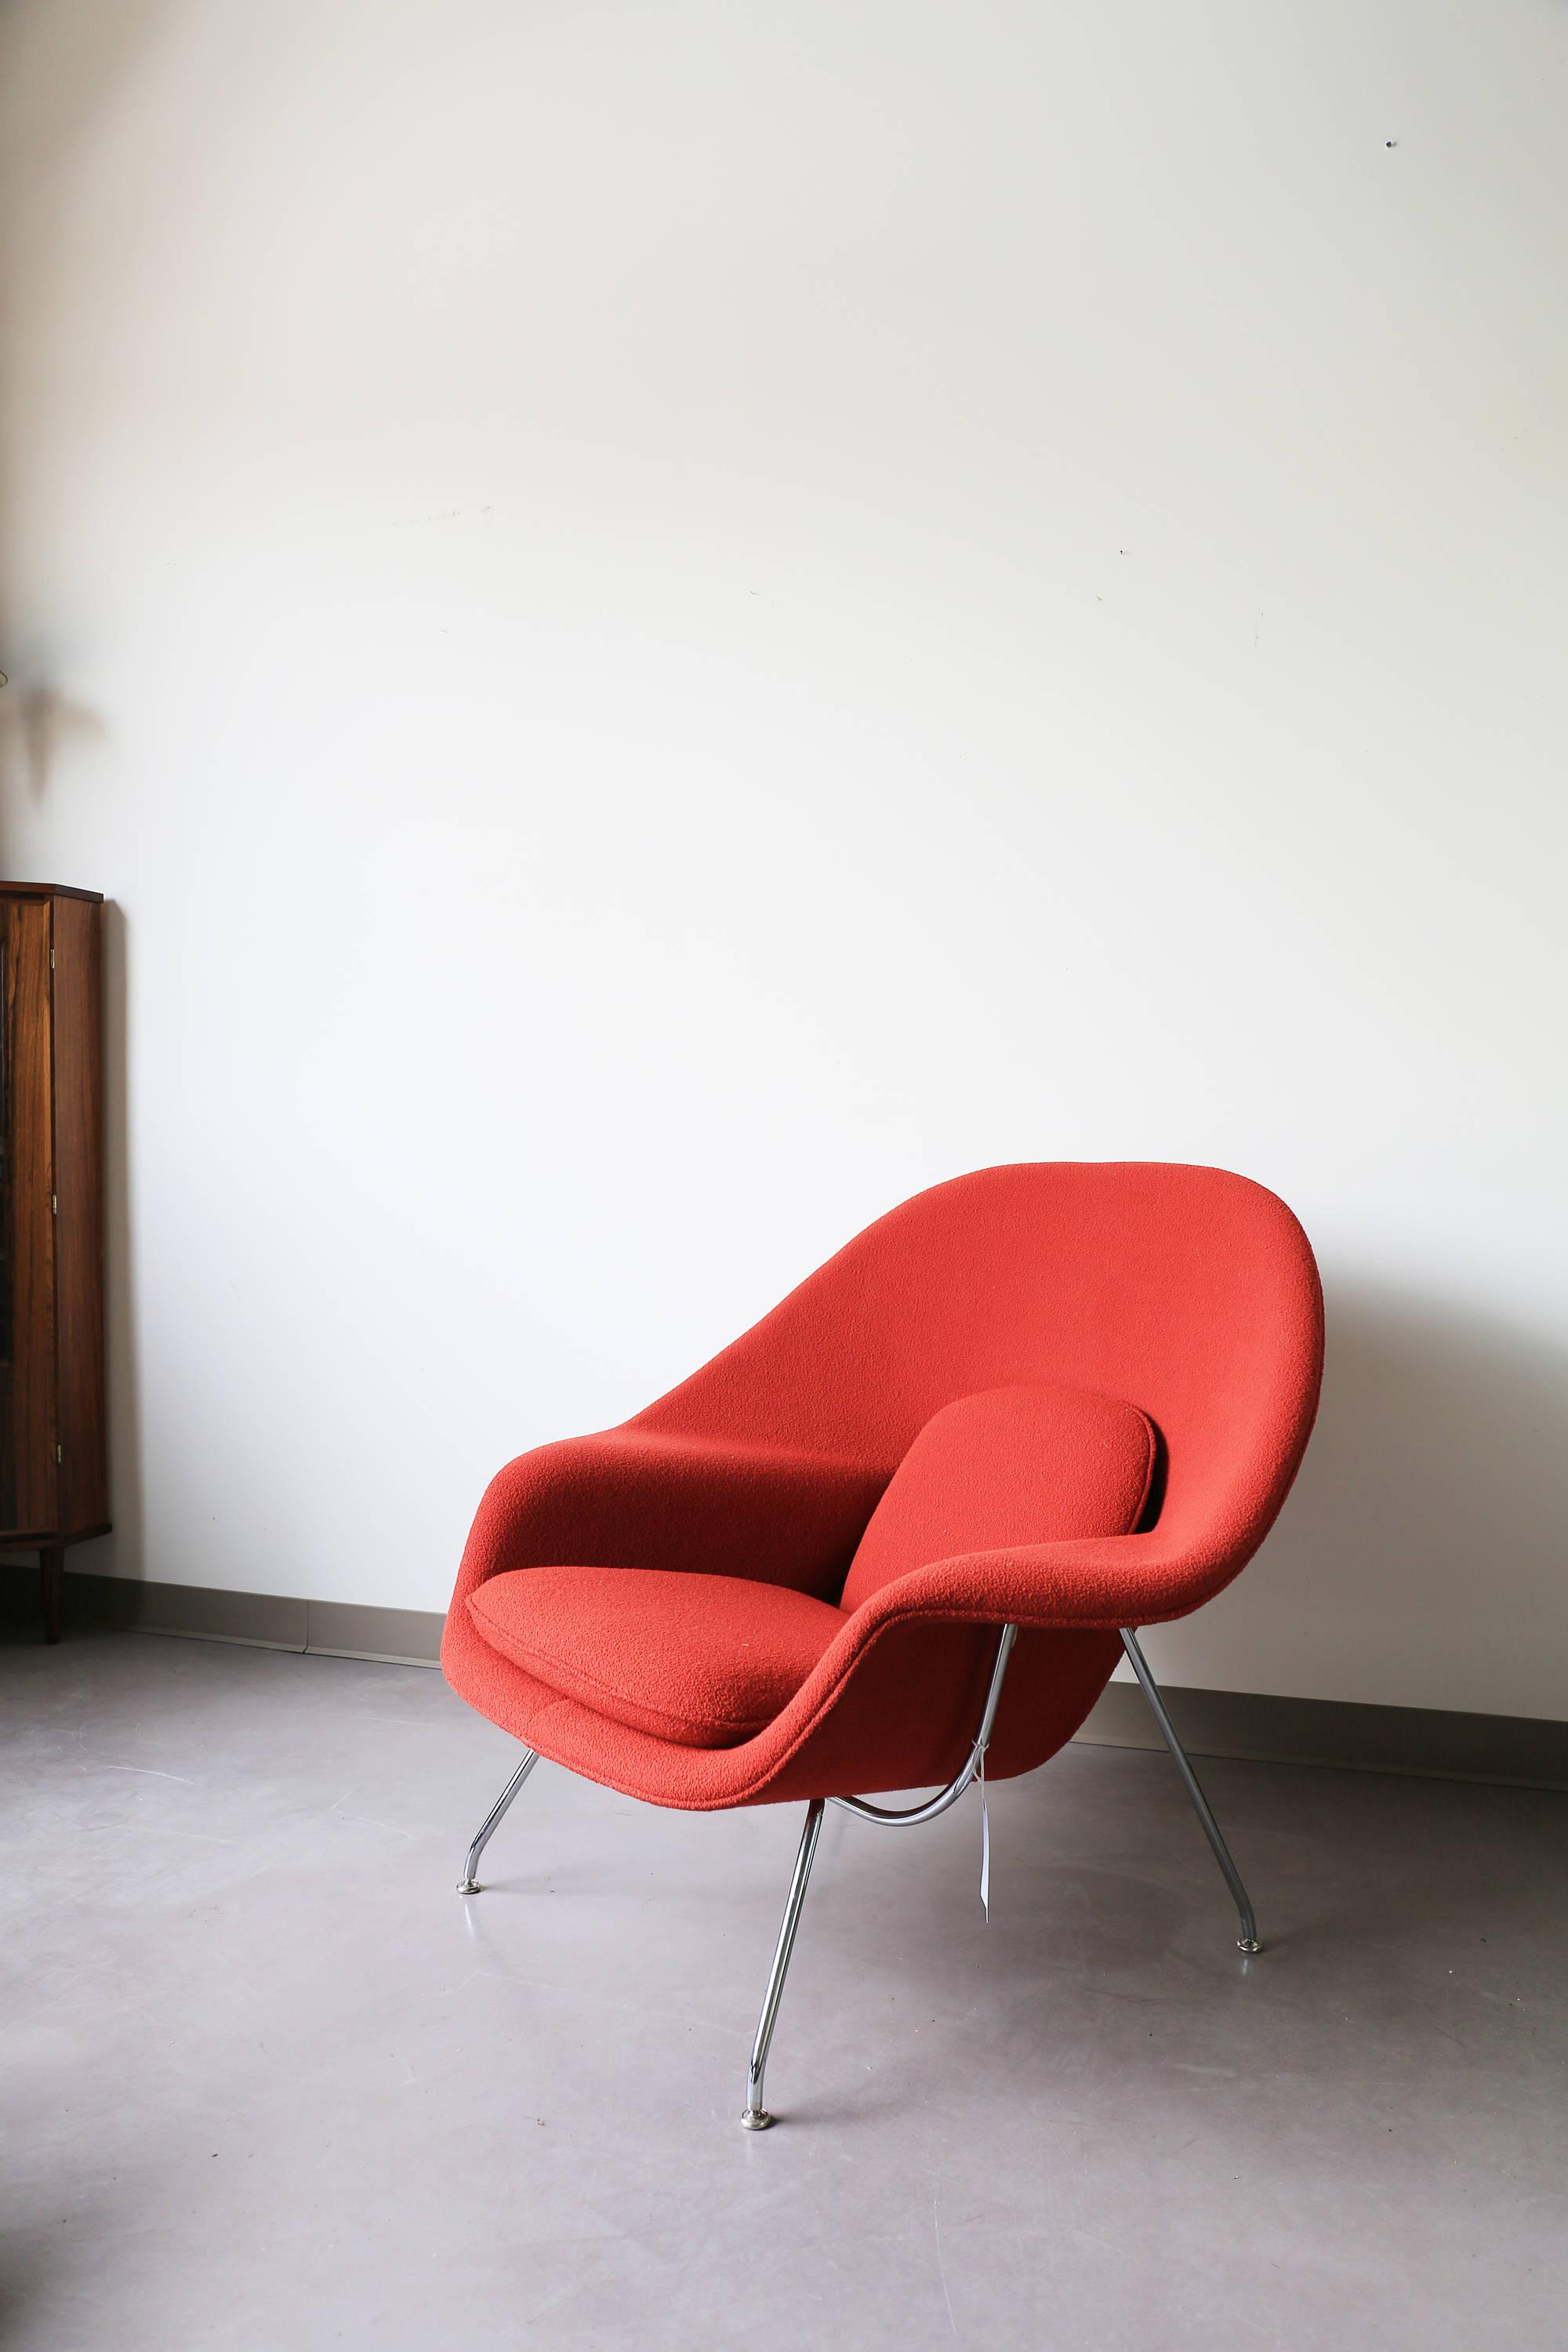 eero saarinen for knoll womb chair image 2 of 6